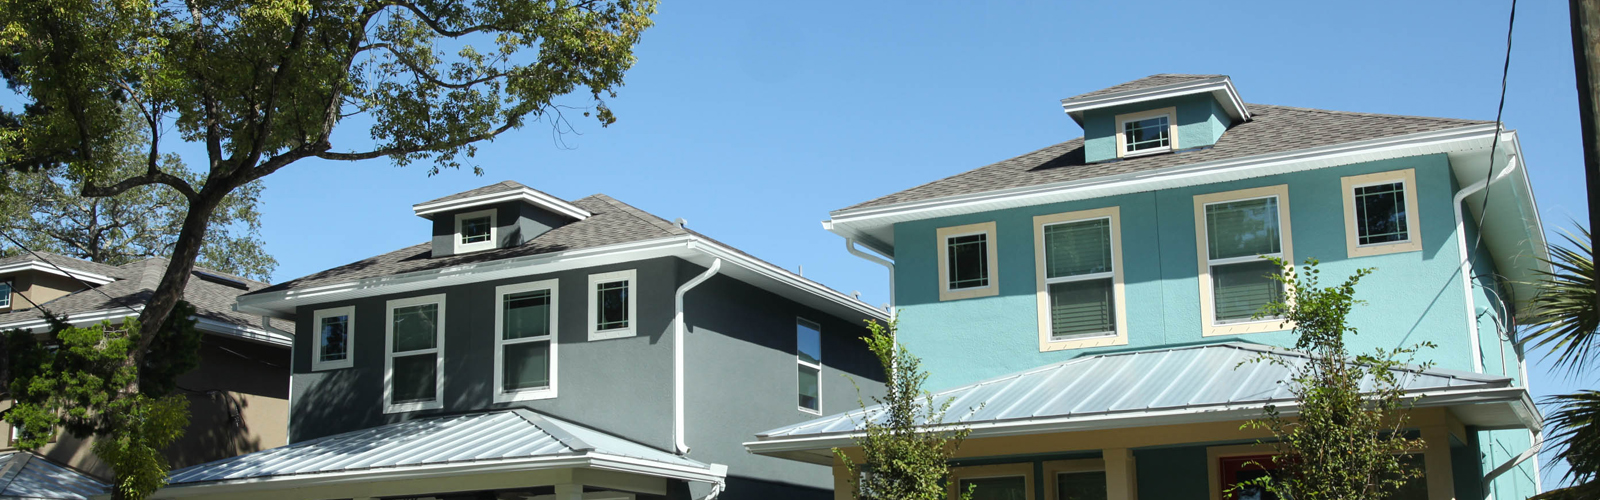 New housing going up in West Tampa across from Macfarlane Park. <span class='image-credits'>Amber Sigman</span>